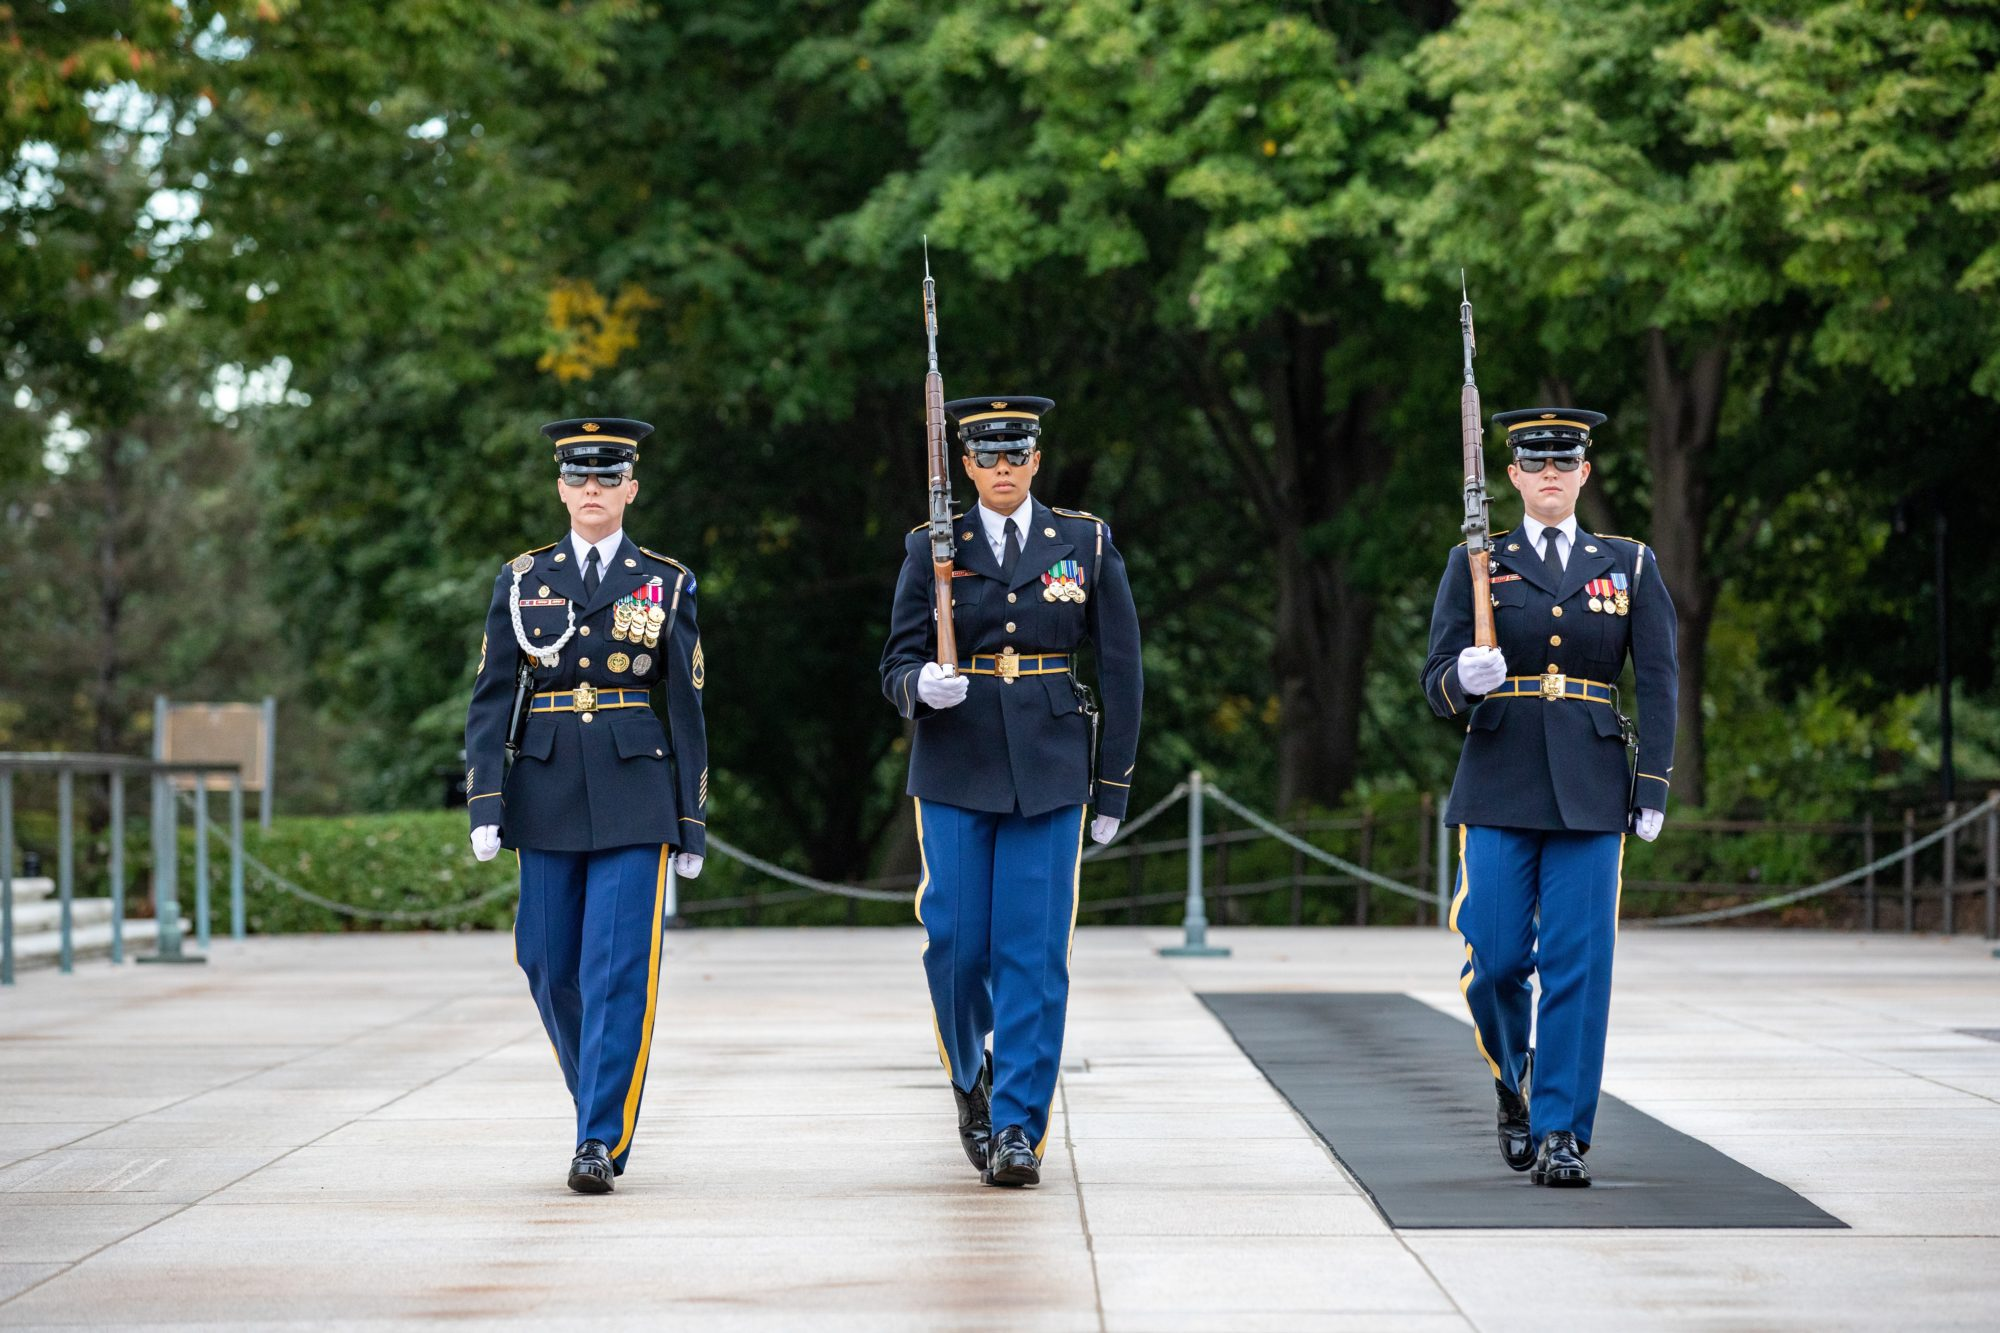 For the first time in history, an all-female guard change occurred at the Tomb of the Unknown Soldier at Arlington National Cemetery.